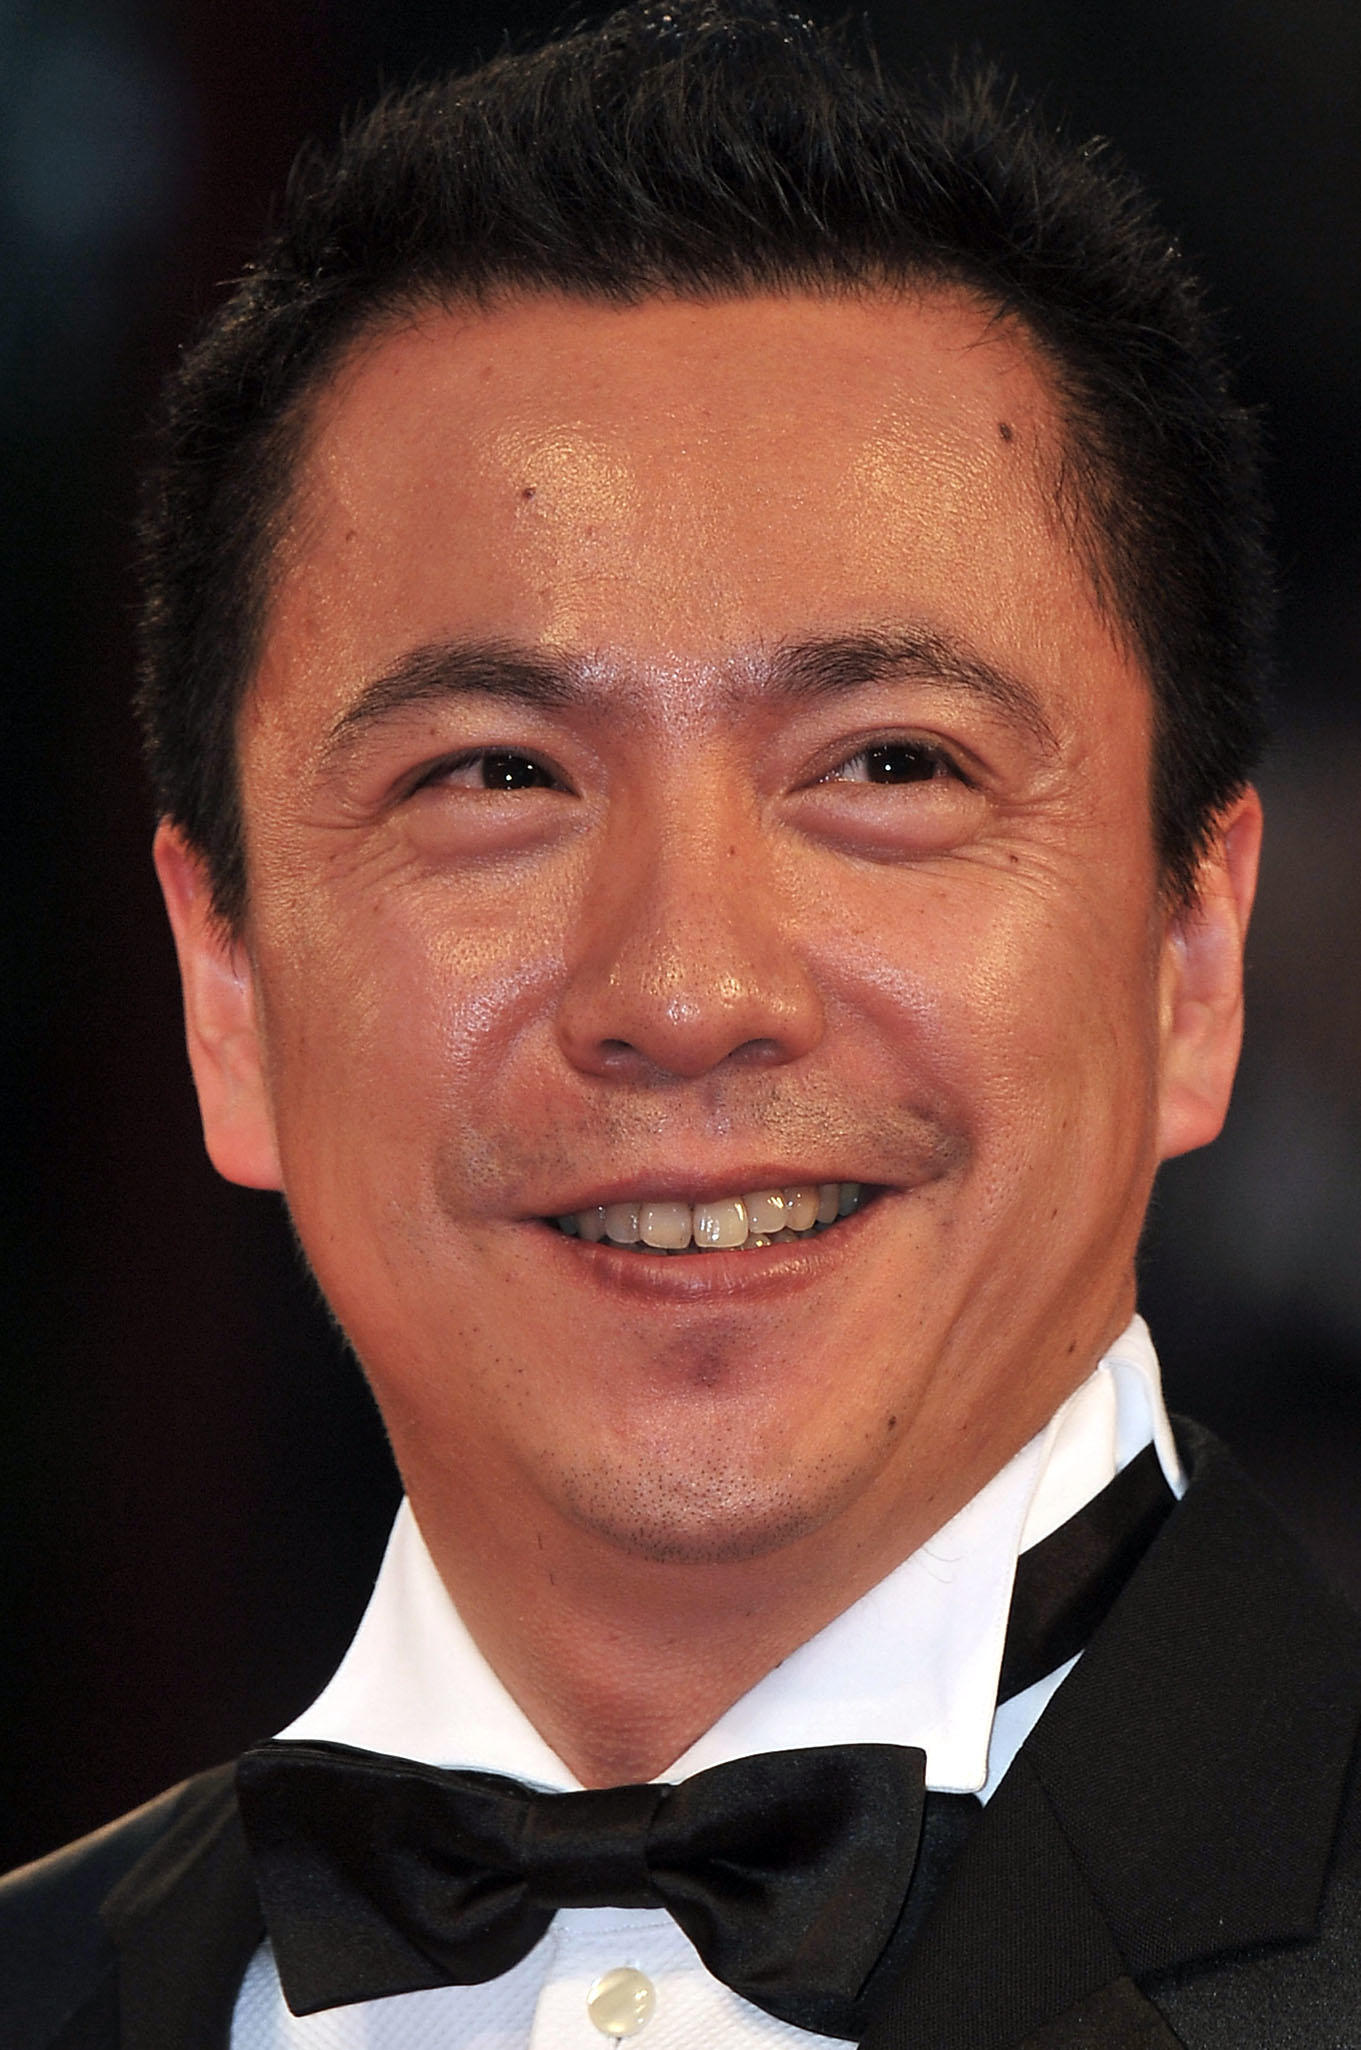 Wang Zhonglei at the premiere of